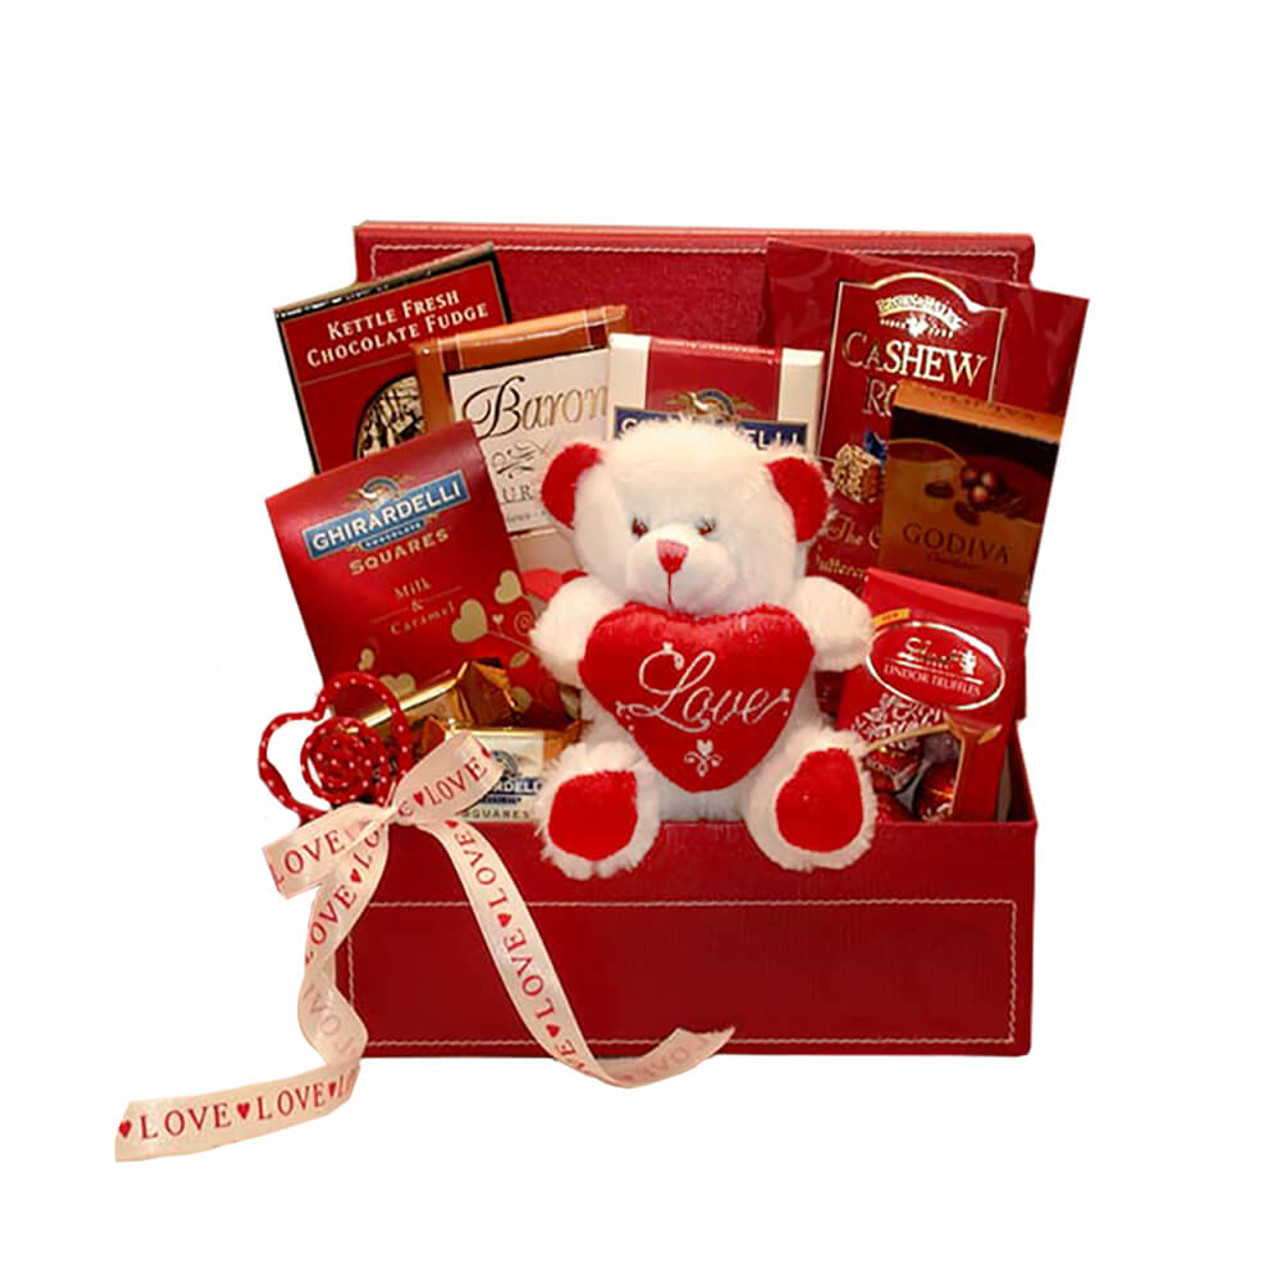 Be My Special Love Chocolate Valentines Gift Set